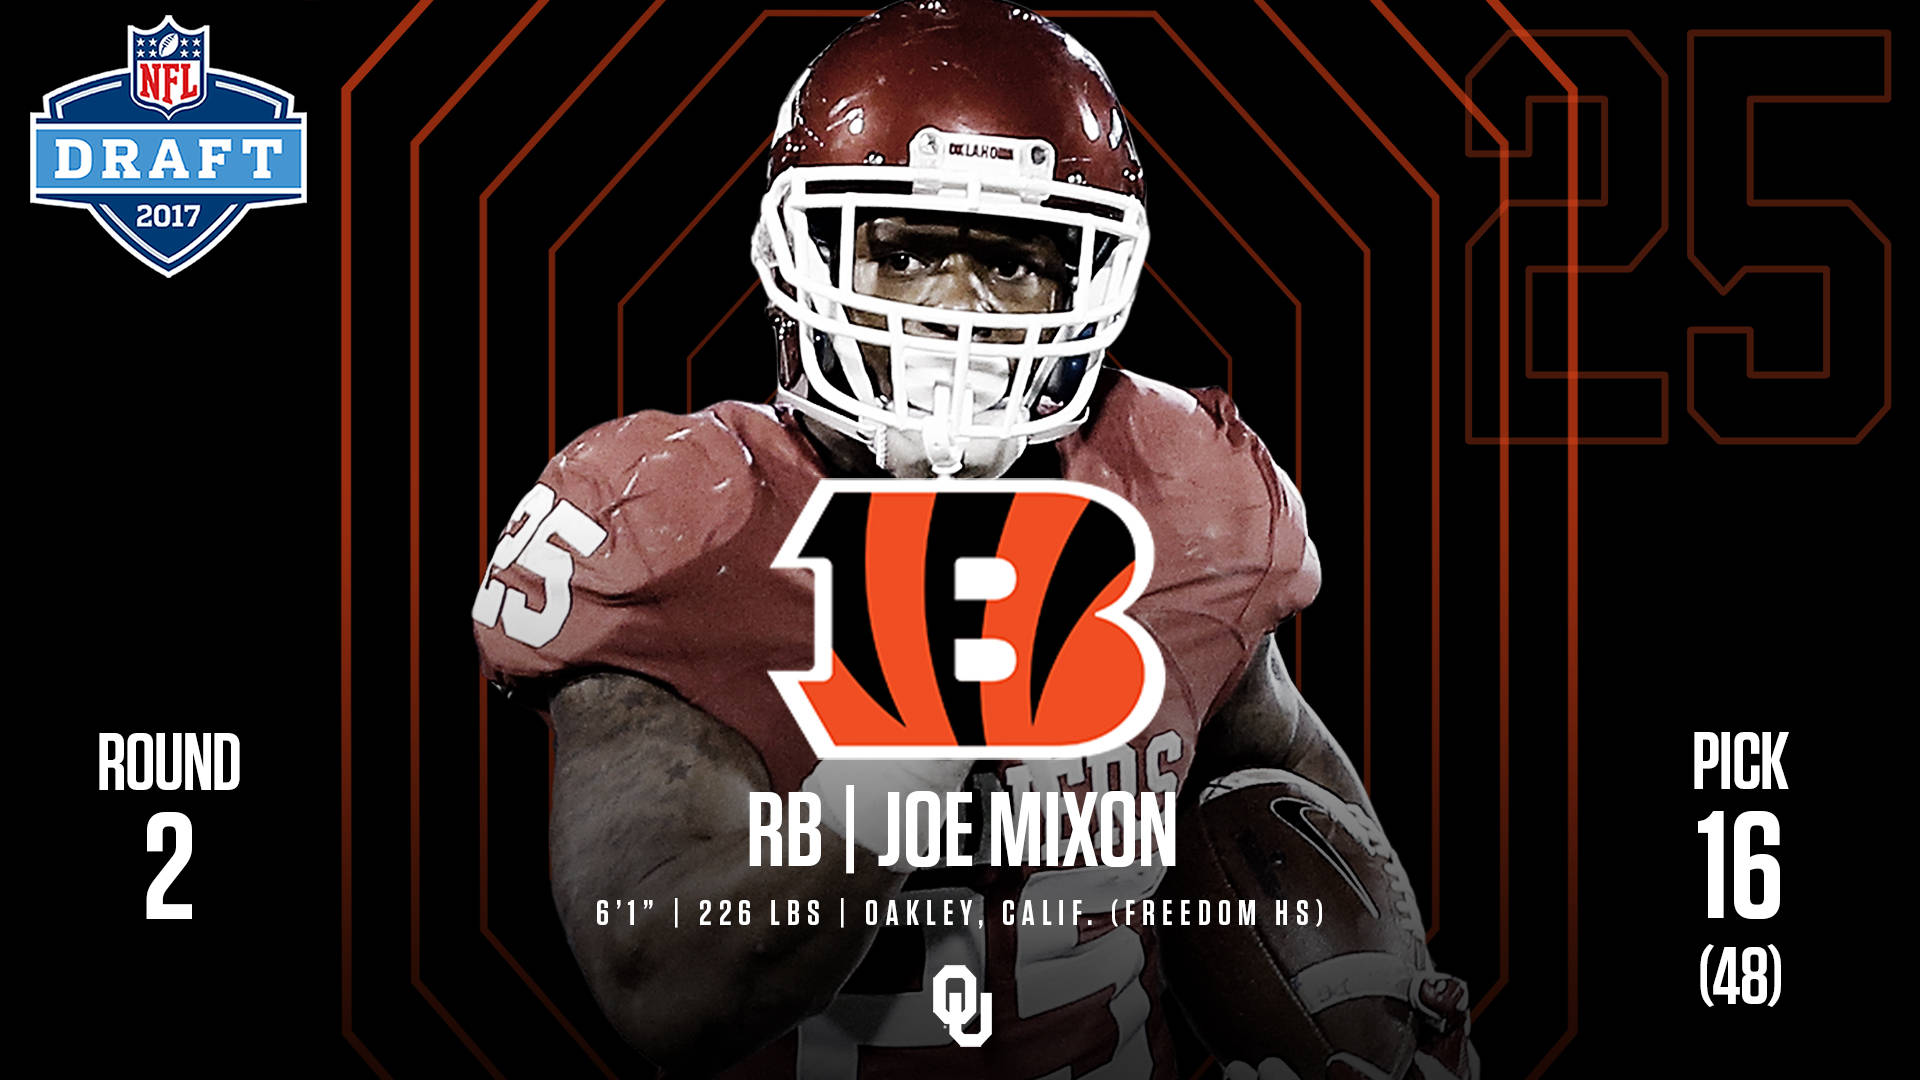 Mixon Goes to Bengals in NFL Draft Second Round   University of 1920x1080